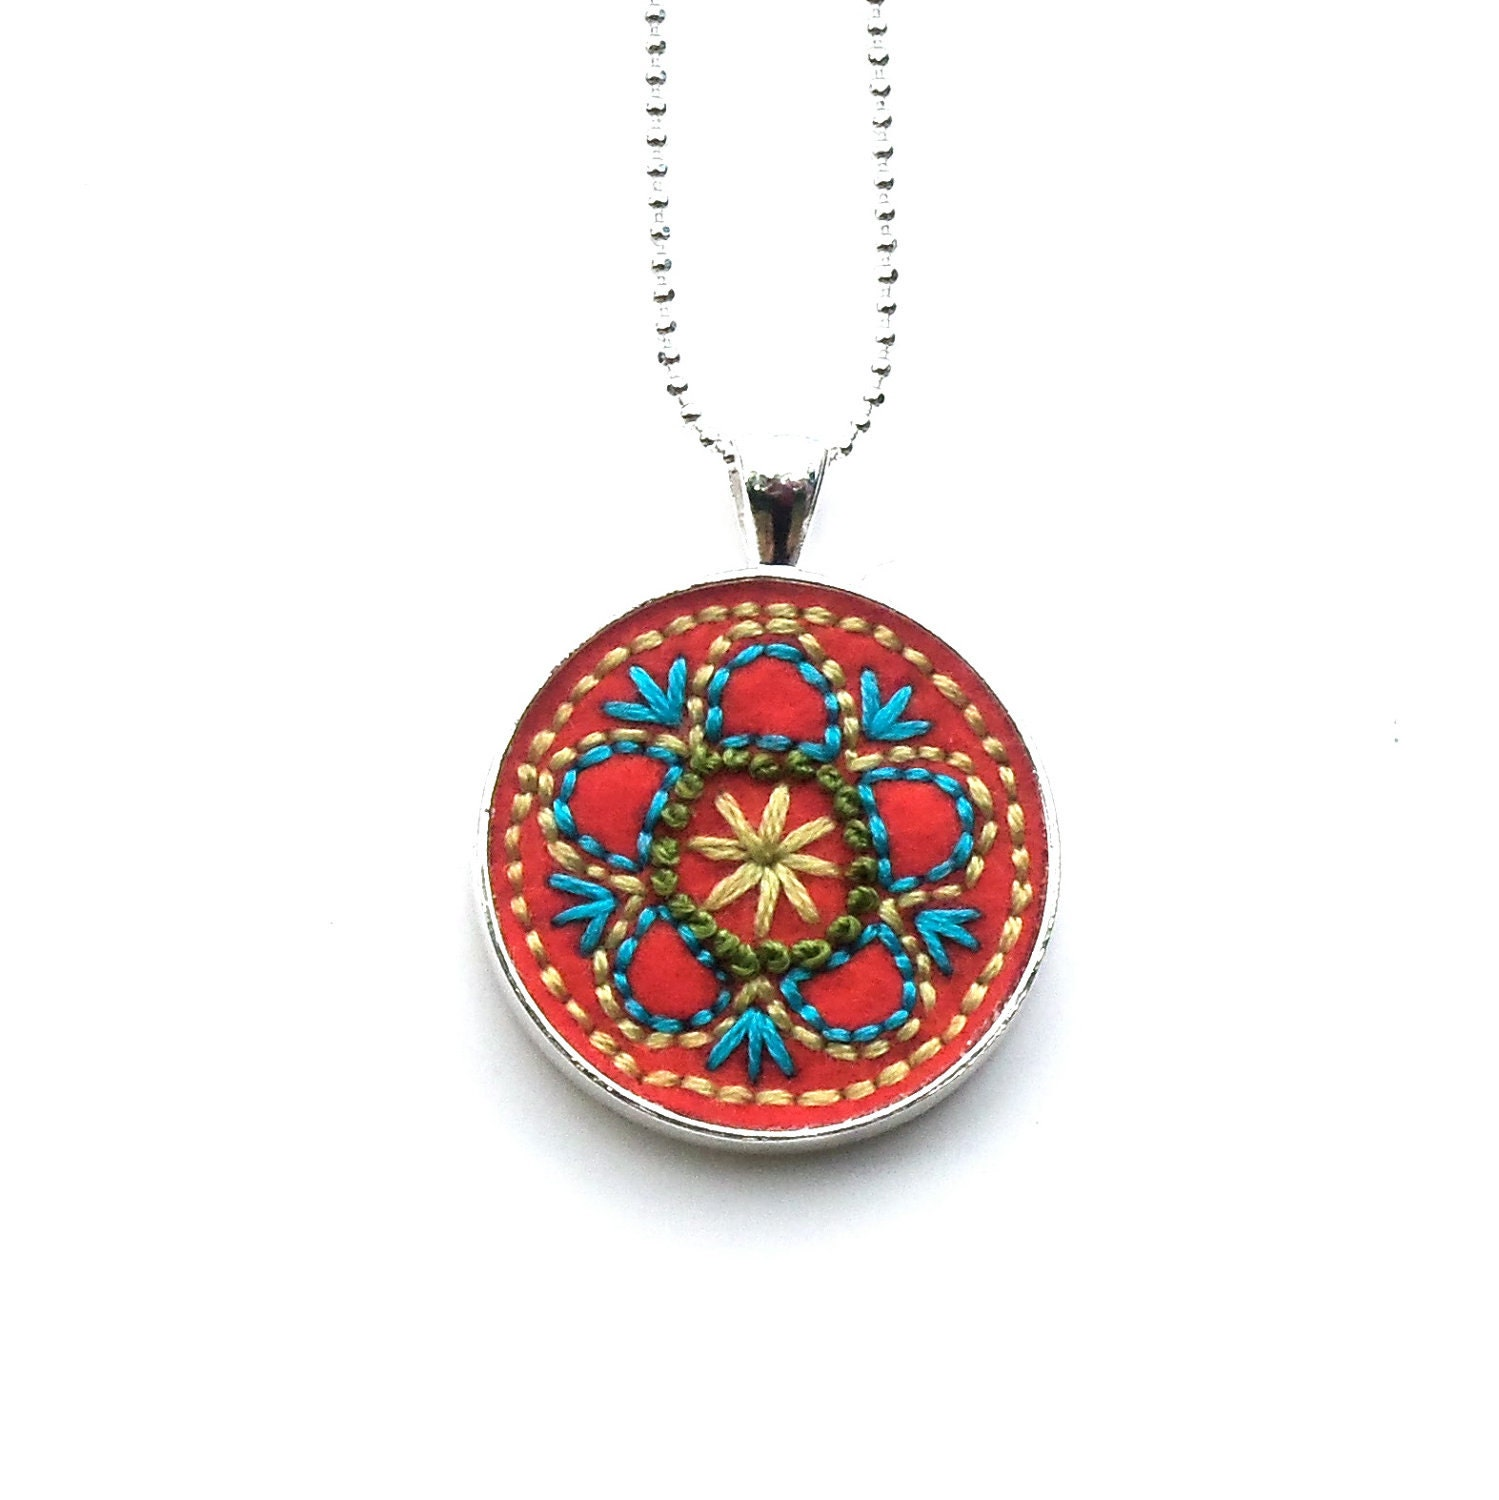 Flower vintage inspired hand embroidered pendant, Tangerine with Blue and Greens - atinyforest